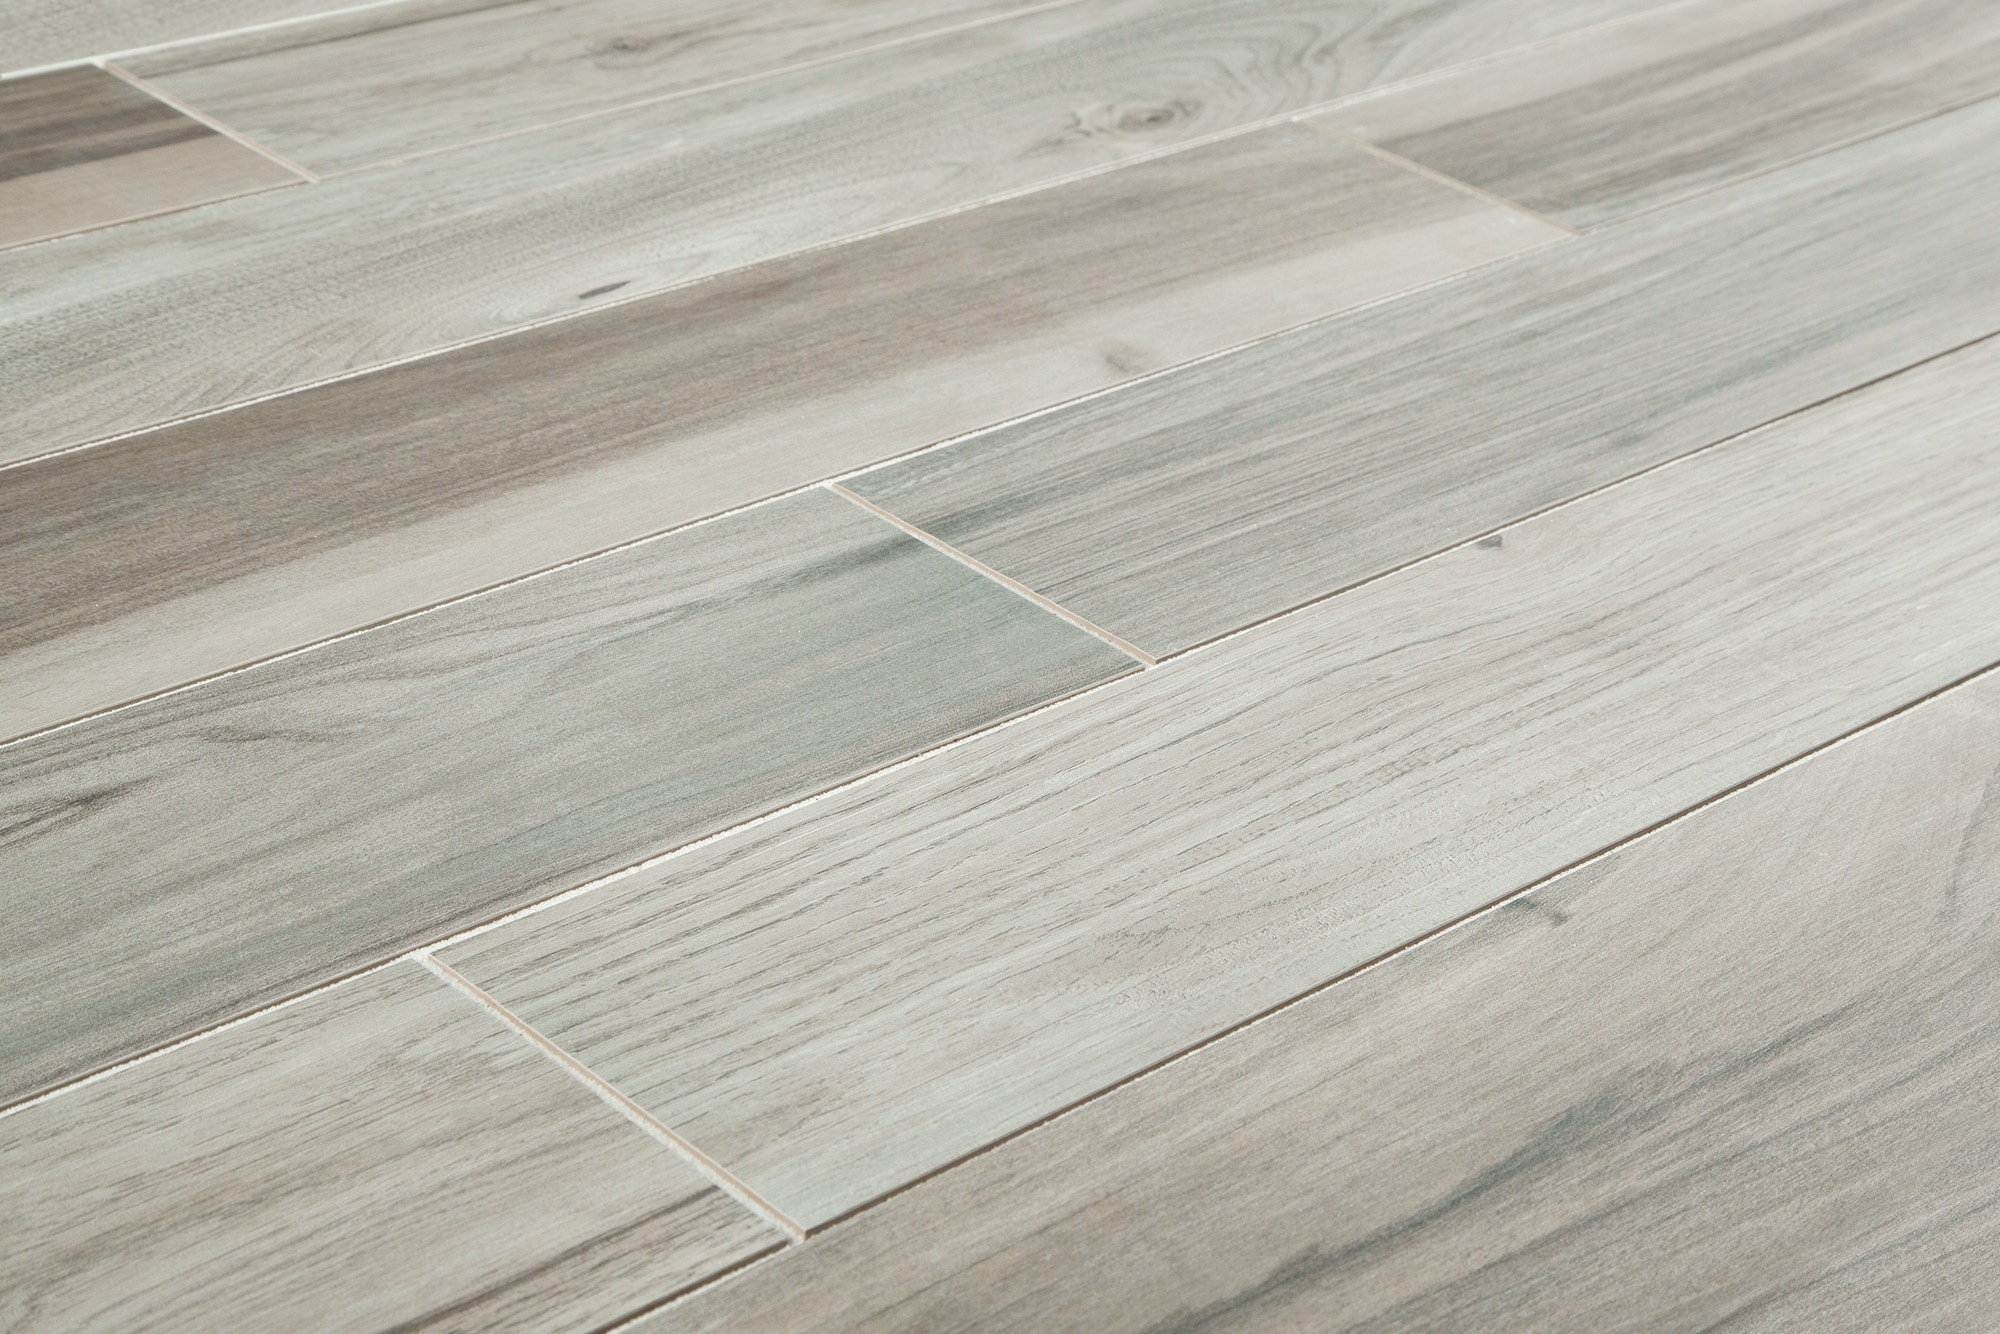 Porcelain tile wood grain flooring roselawnlutheran for Wooden floor tiles